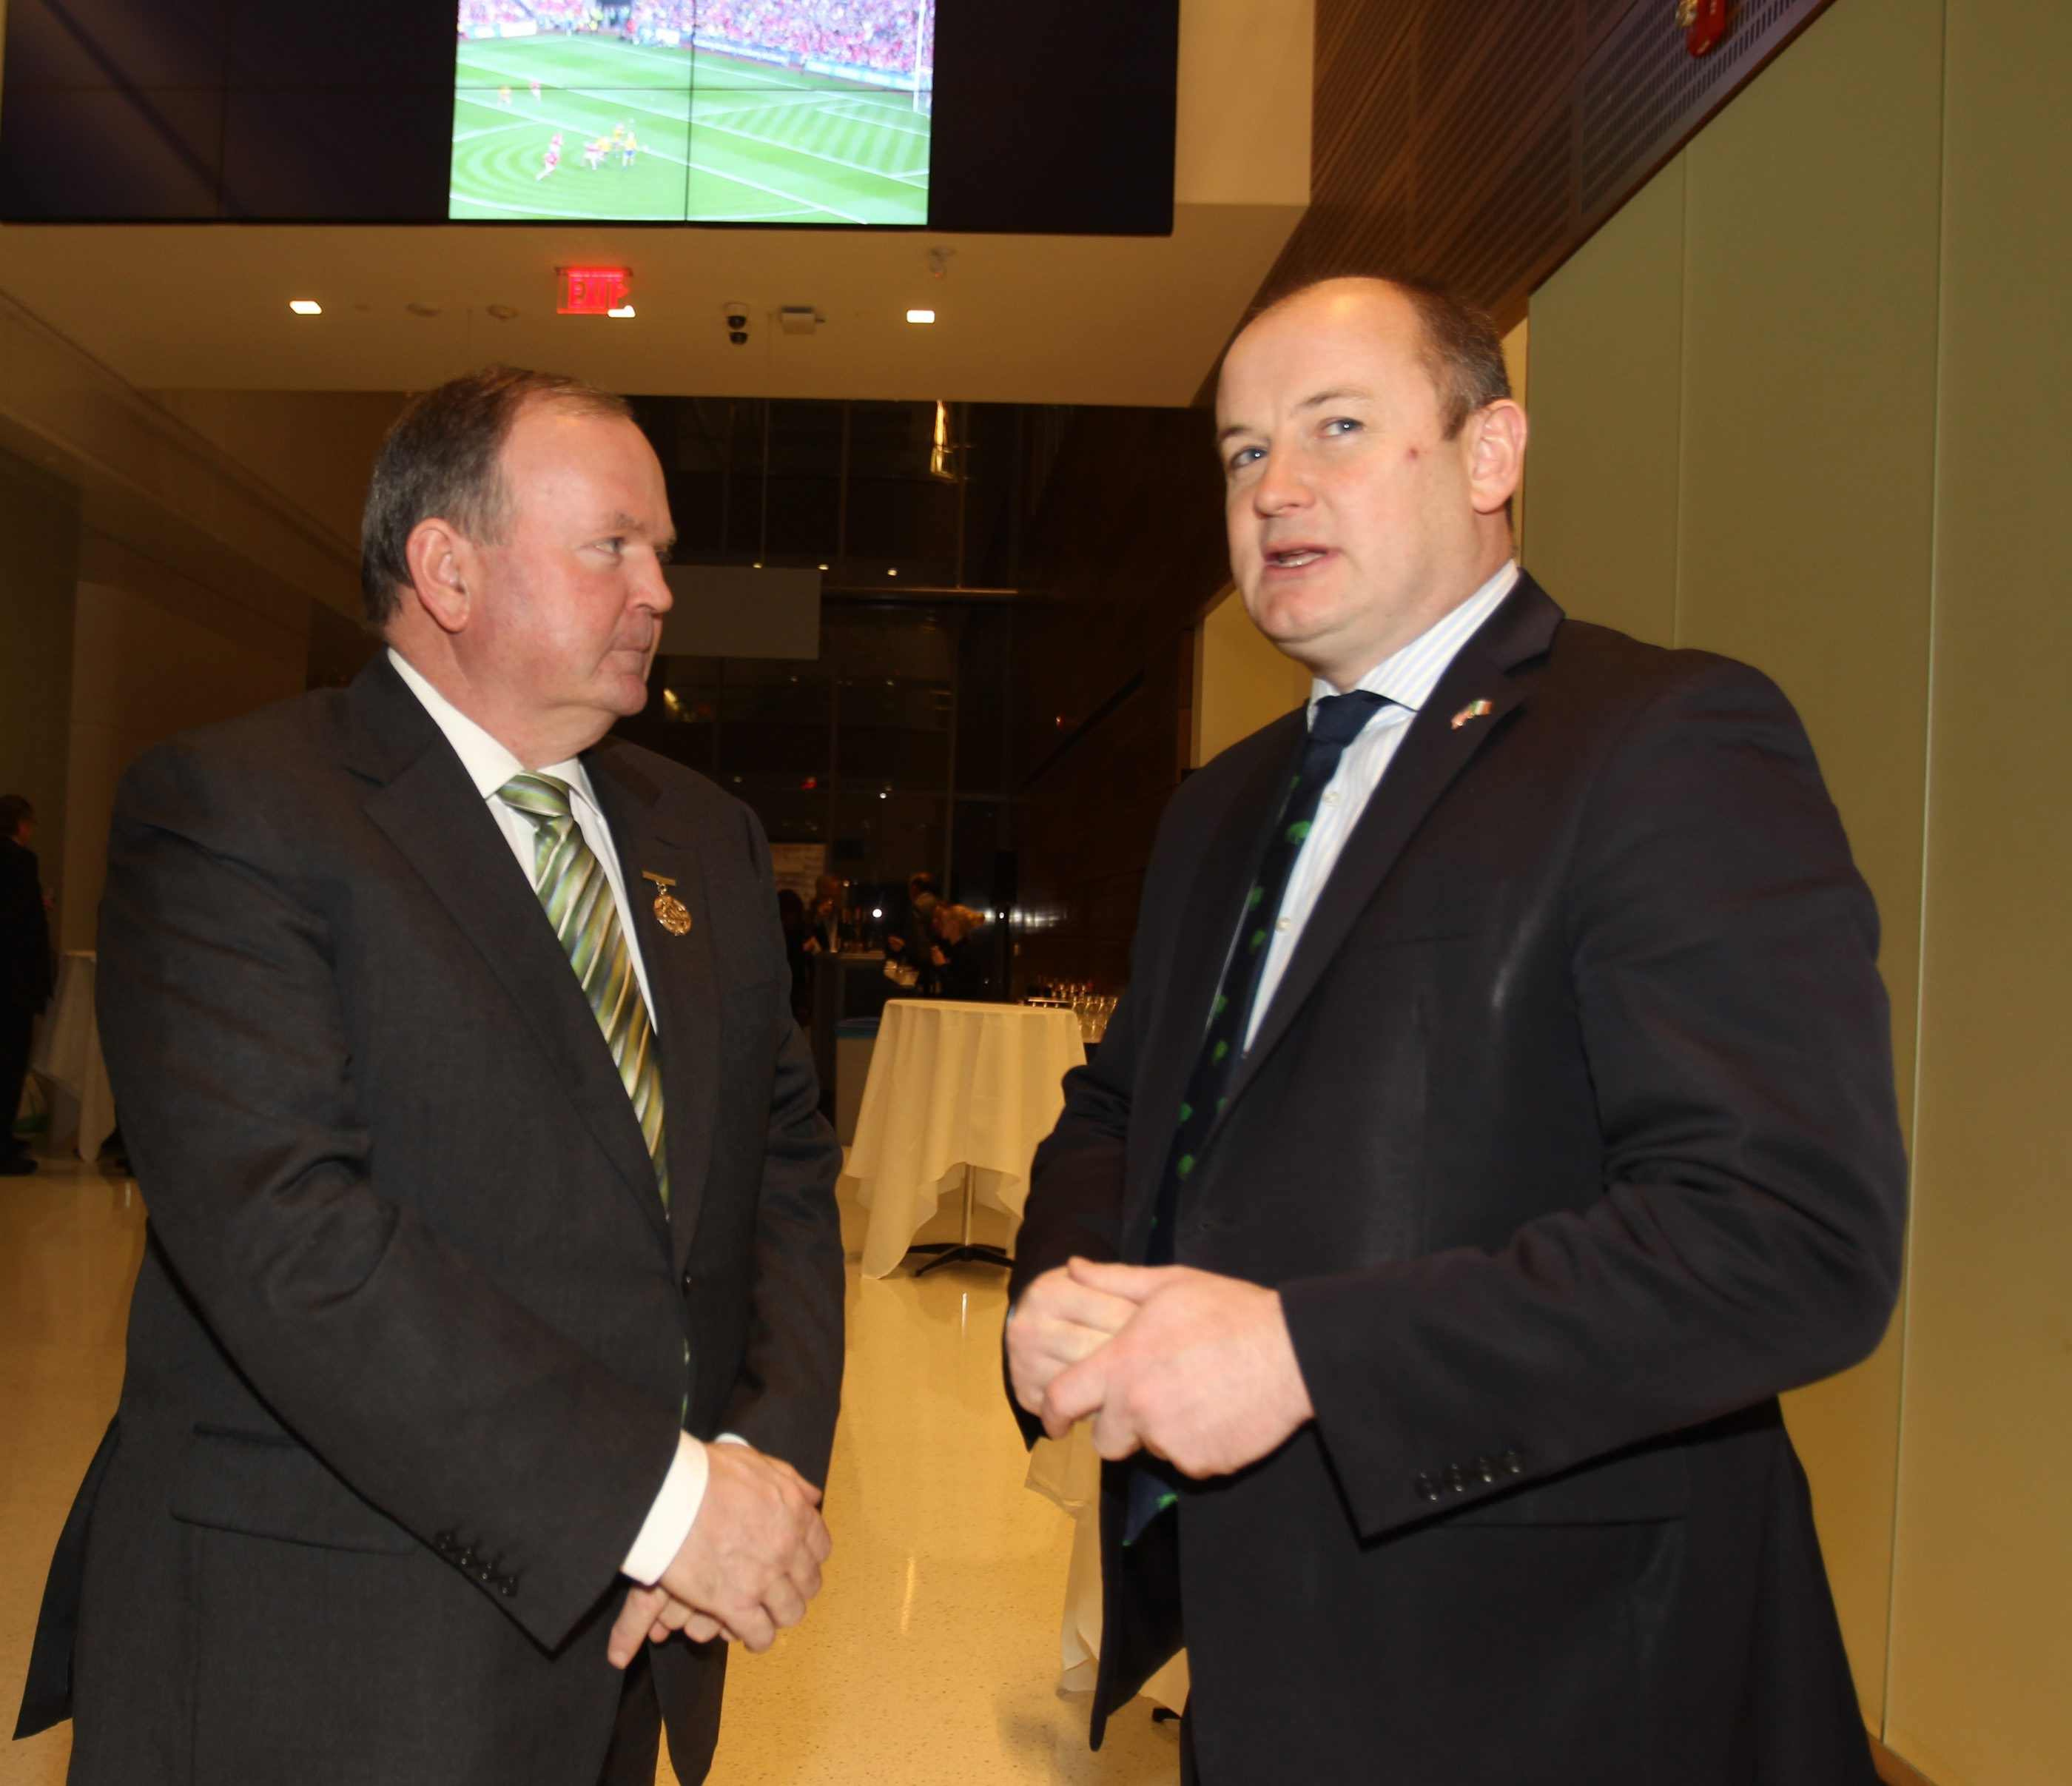 Two Irish dignitaries, Liam O'Neill, left, and Peter Ryan, praised the pending establishment of an Irish Network USA chapter in Buffalo on Friday.